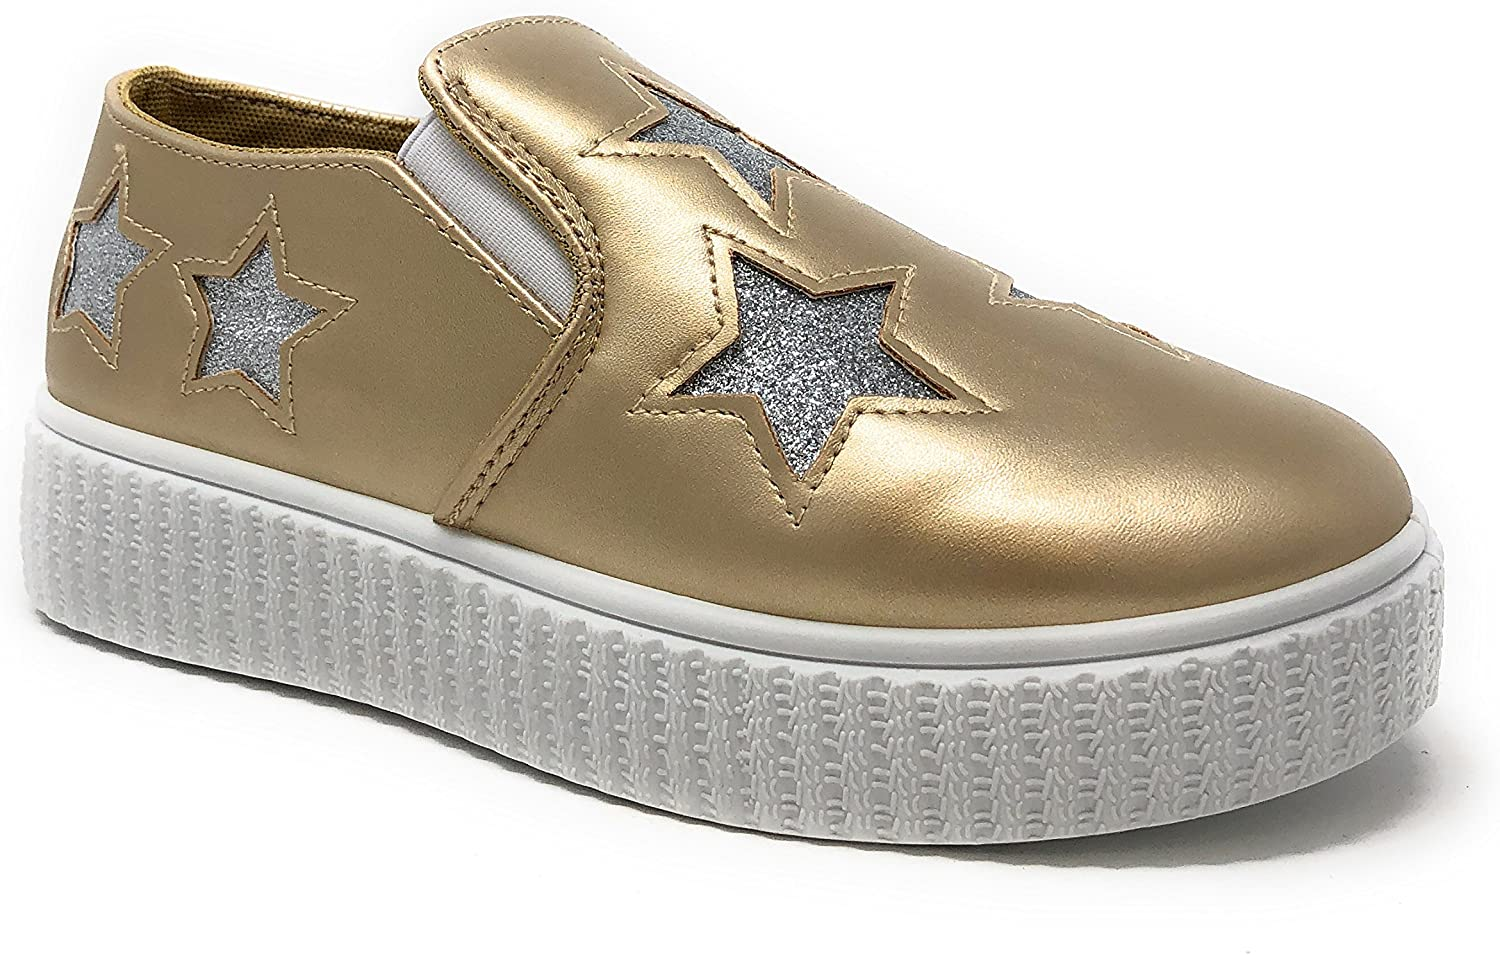 Pink Label Women's Slip-On Stylish Fashion Sneaker with Glitter Stars Pink